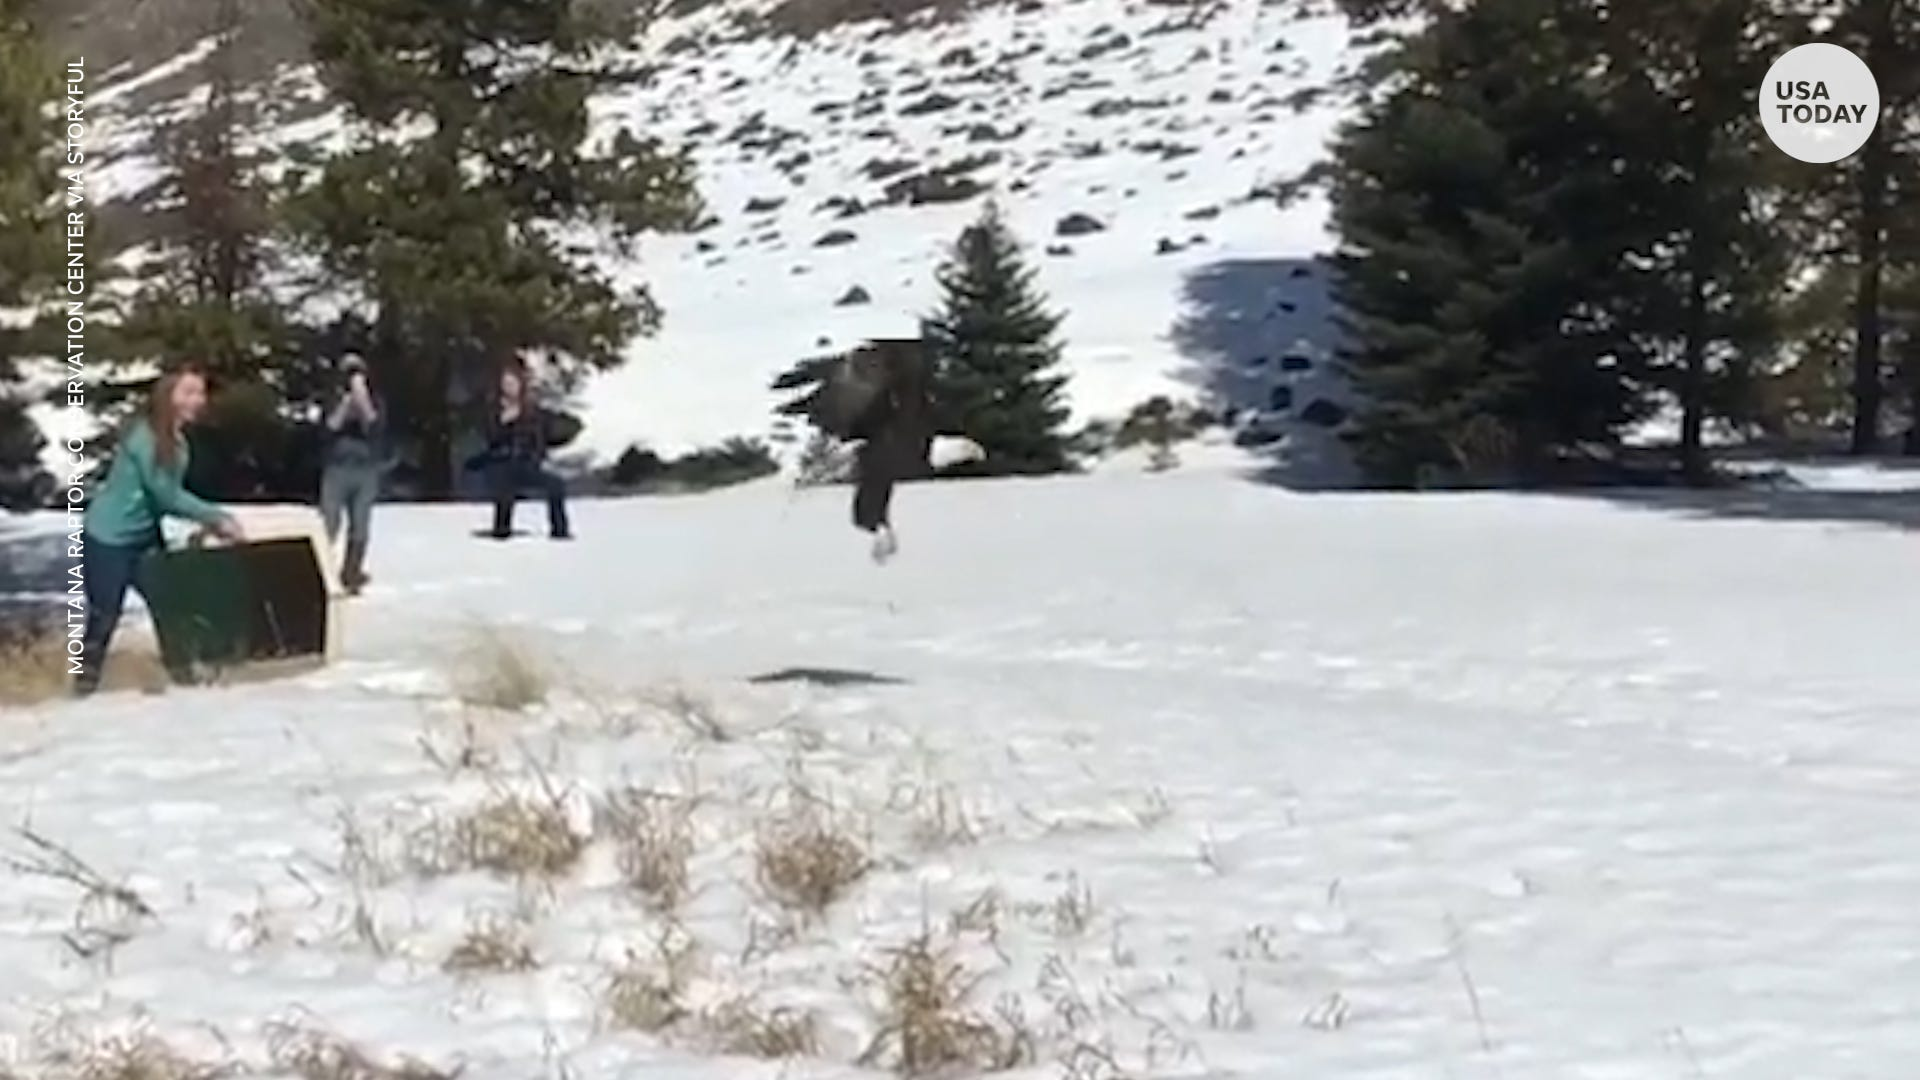 Watch the majestic moment a bald eagle is released back into the wild